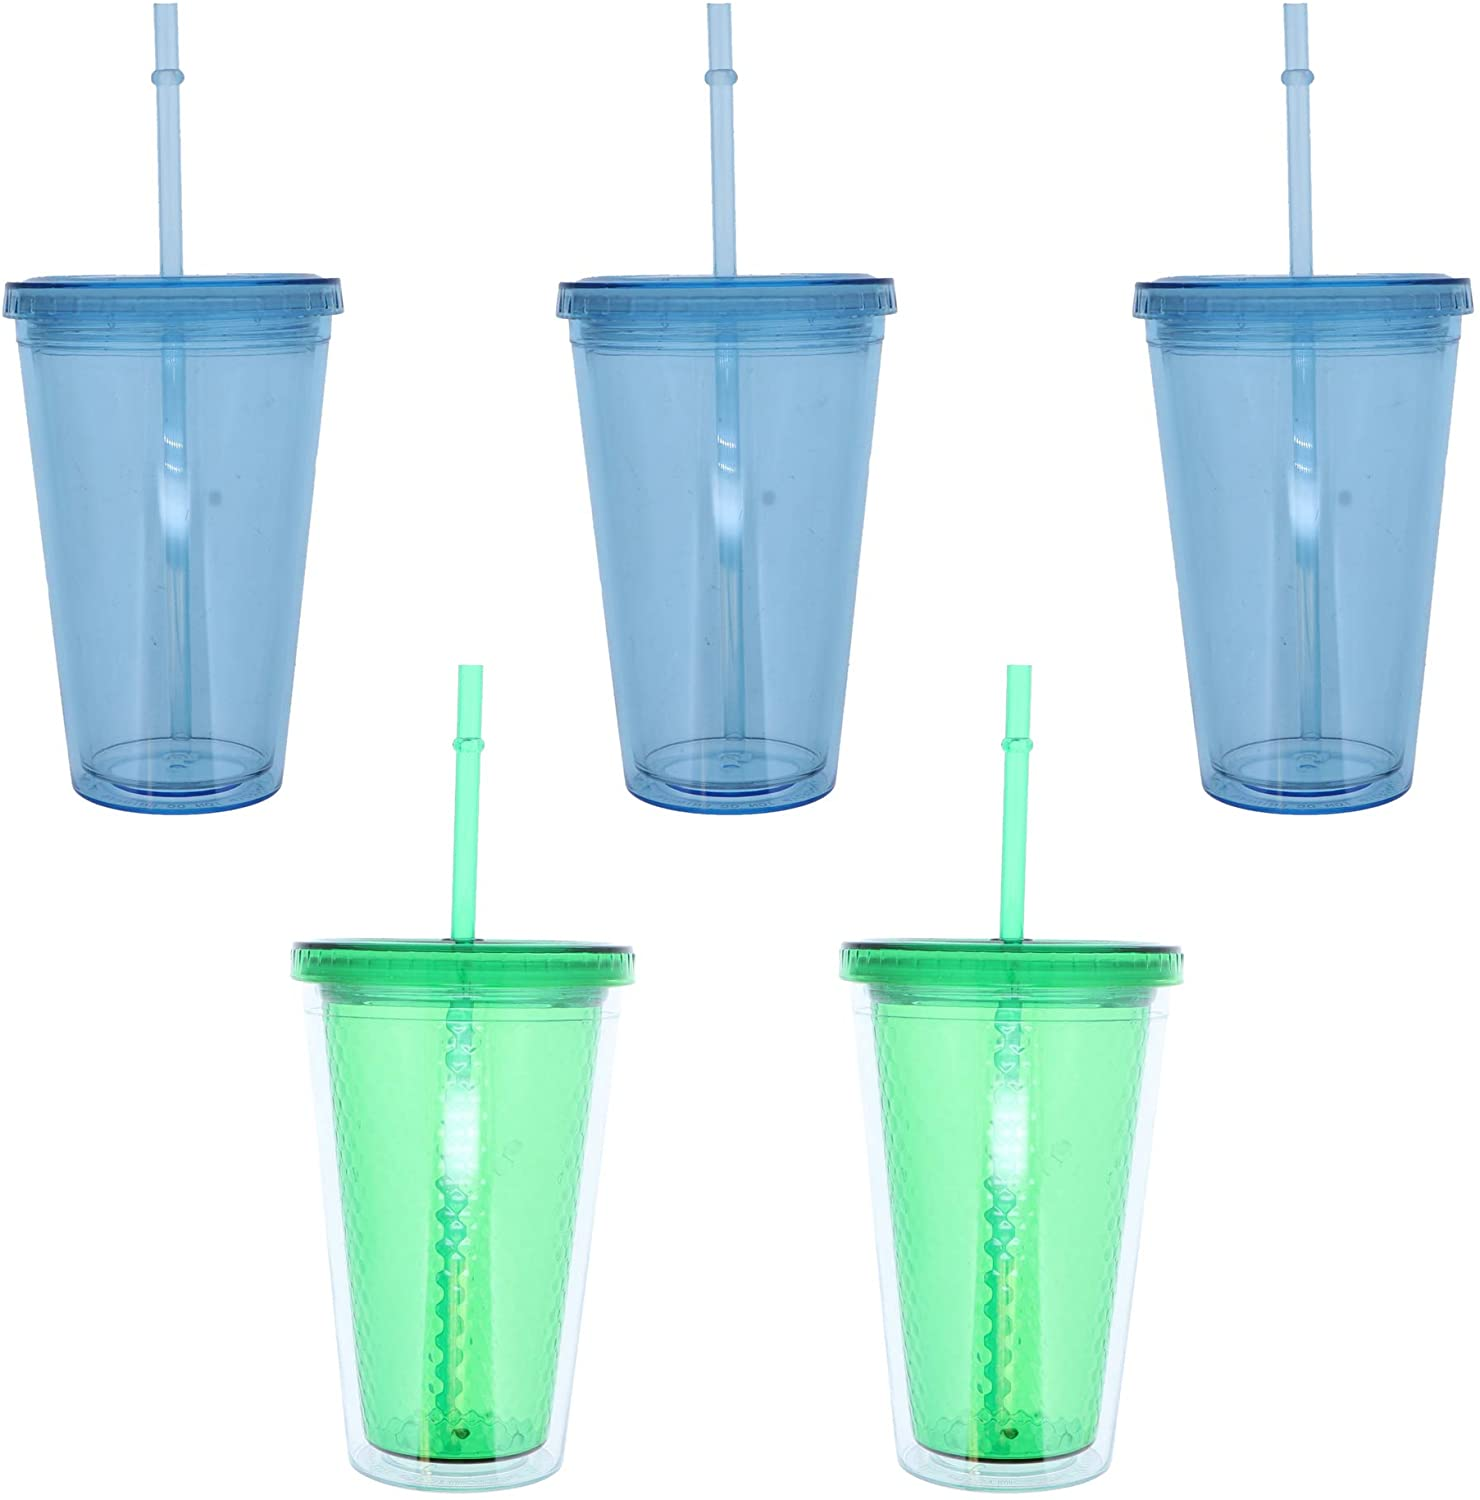 16 Oz Acrylic Tumbler with Lid and Straw - 5 Pack - 2 Green & 3 Blue